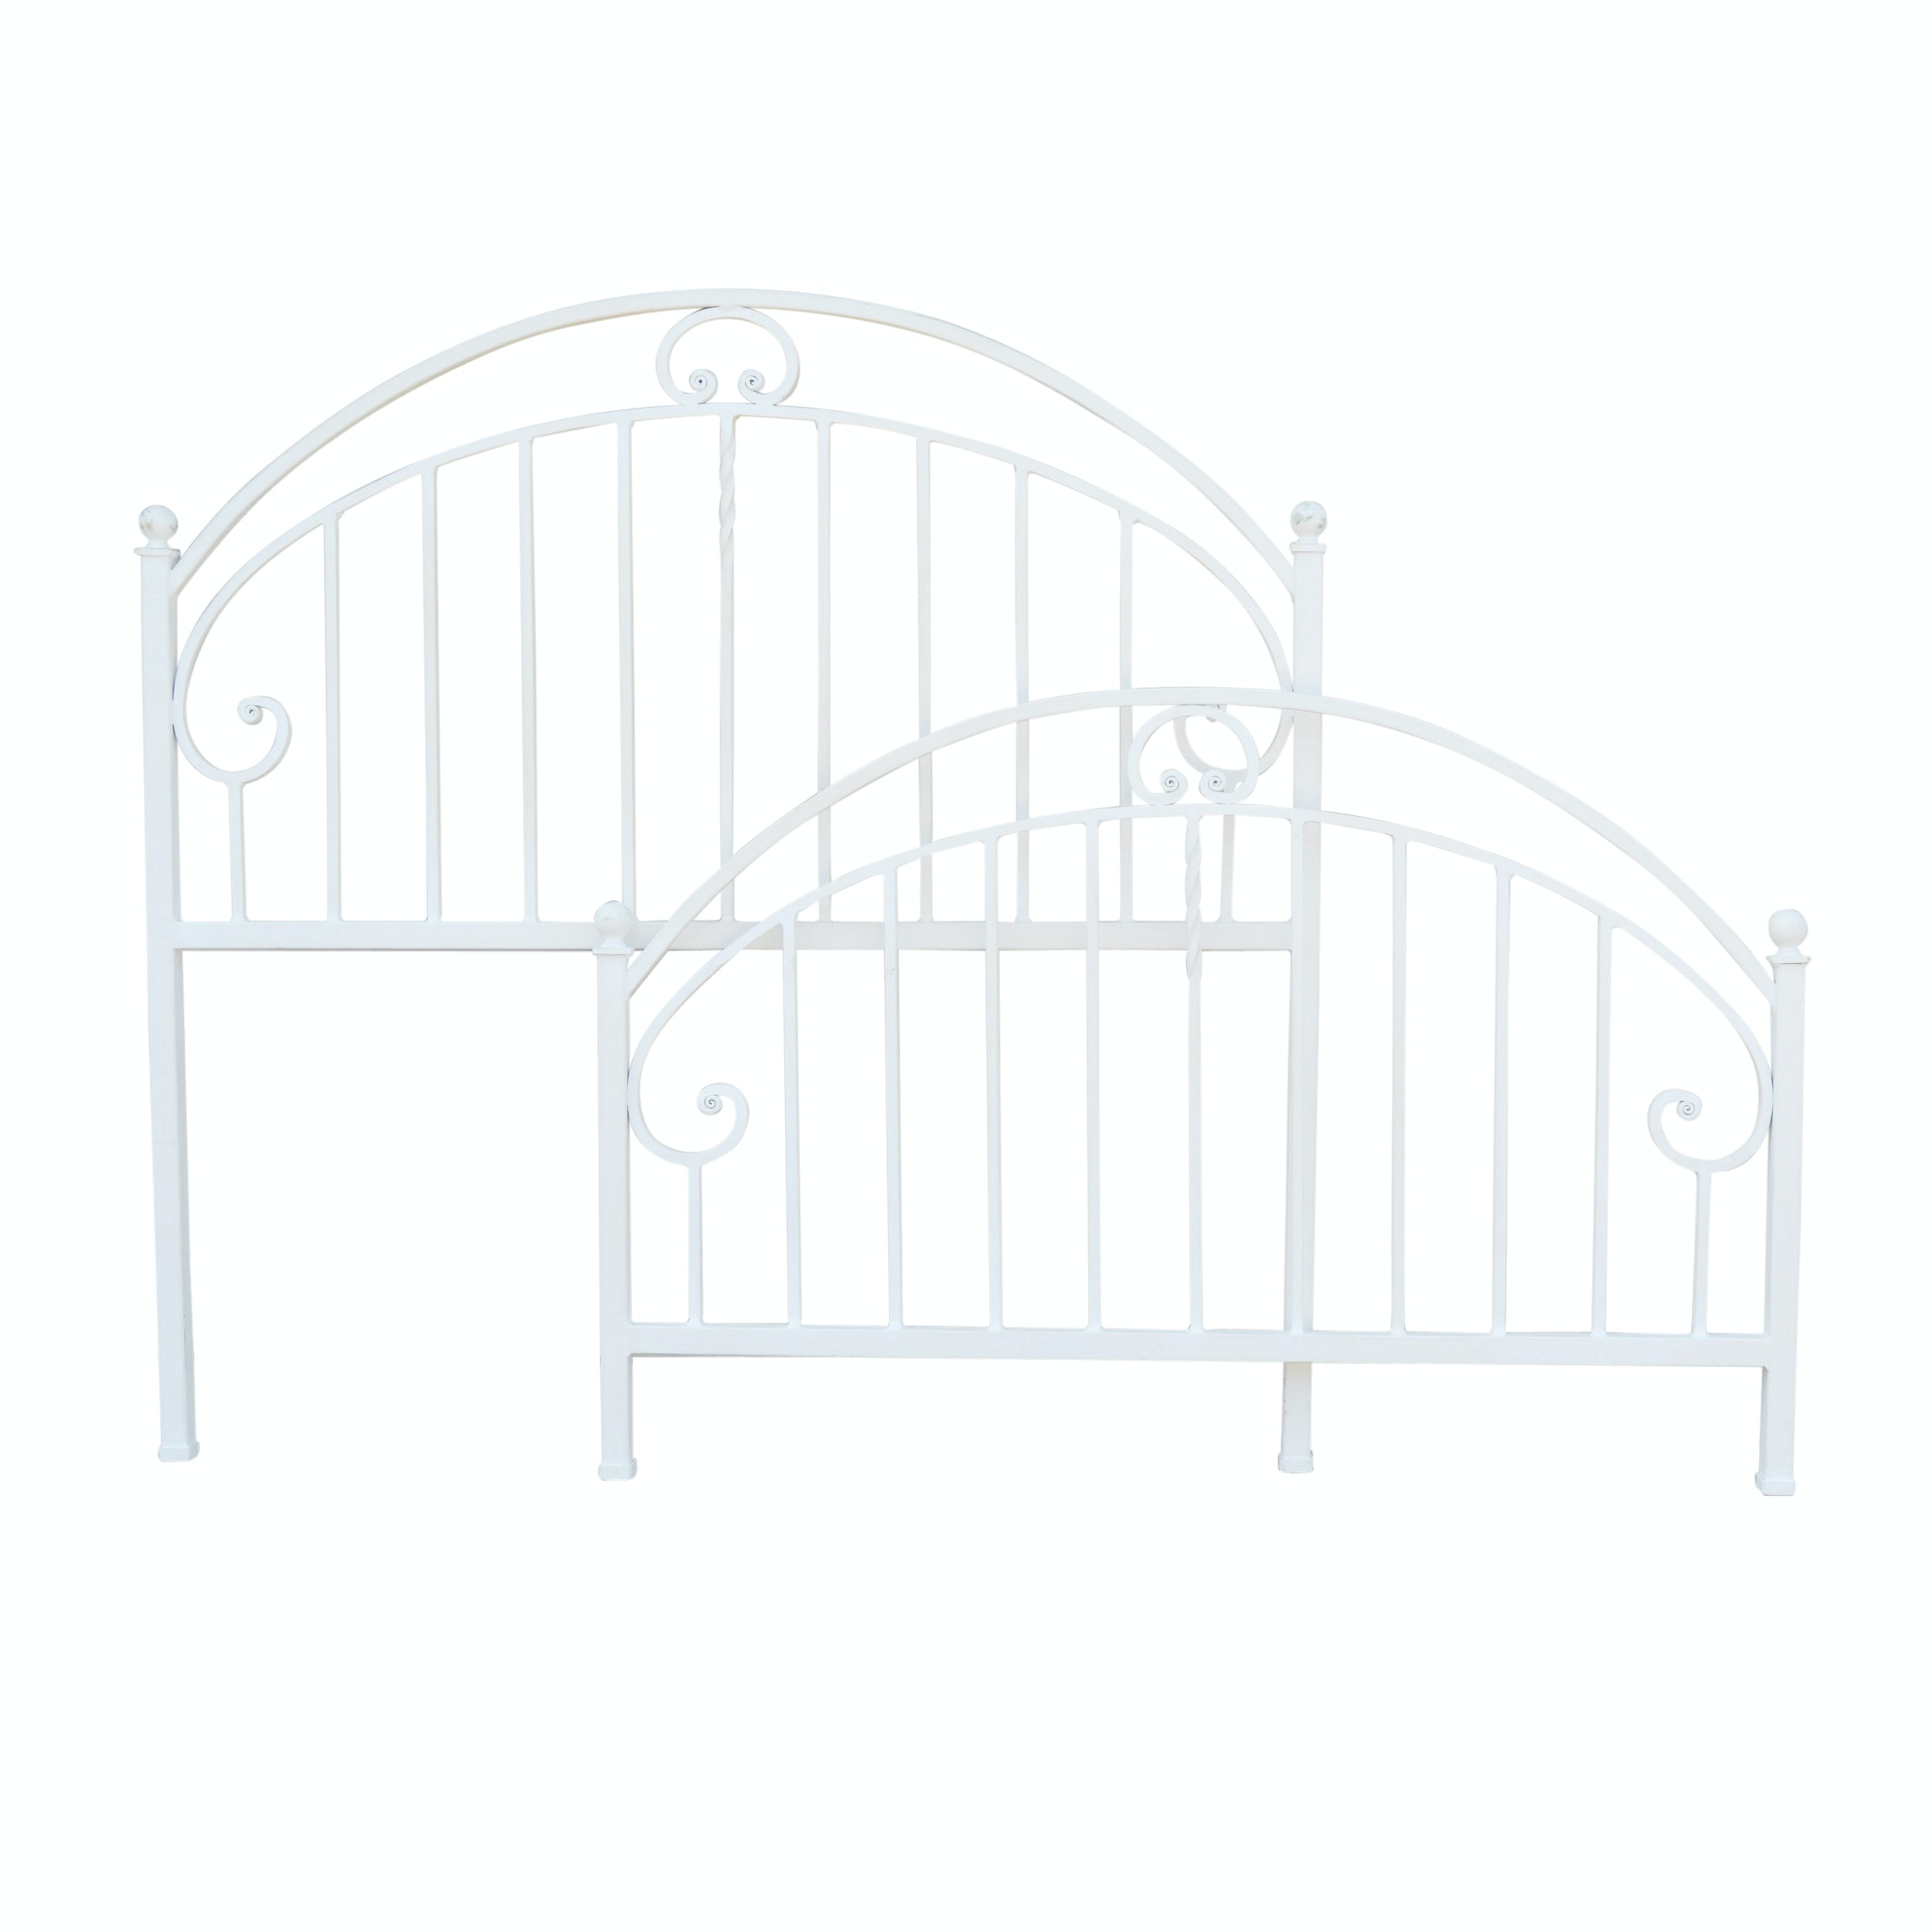 Ethan Allen White Iron Queen Bed Frame